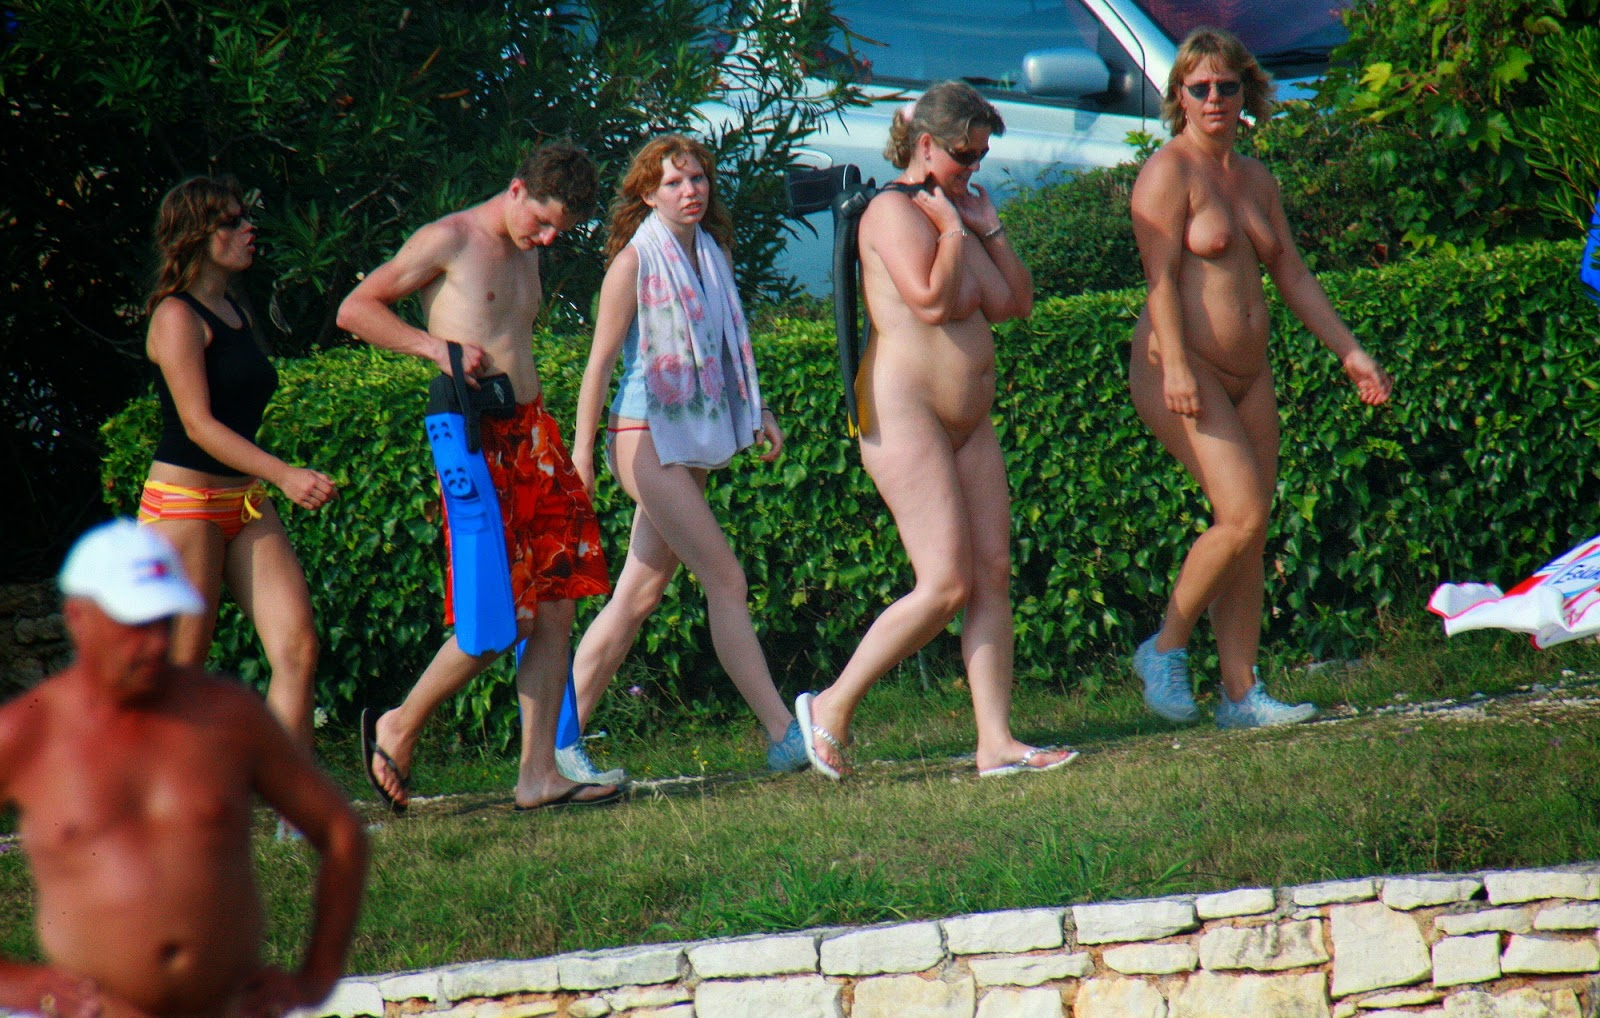 Group nude women